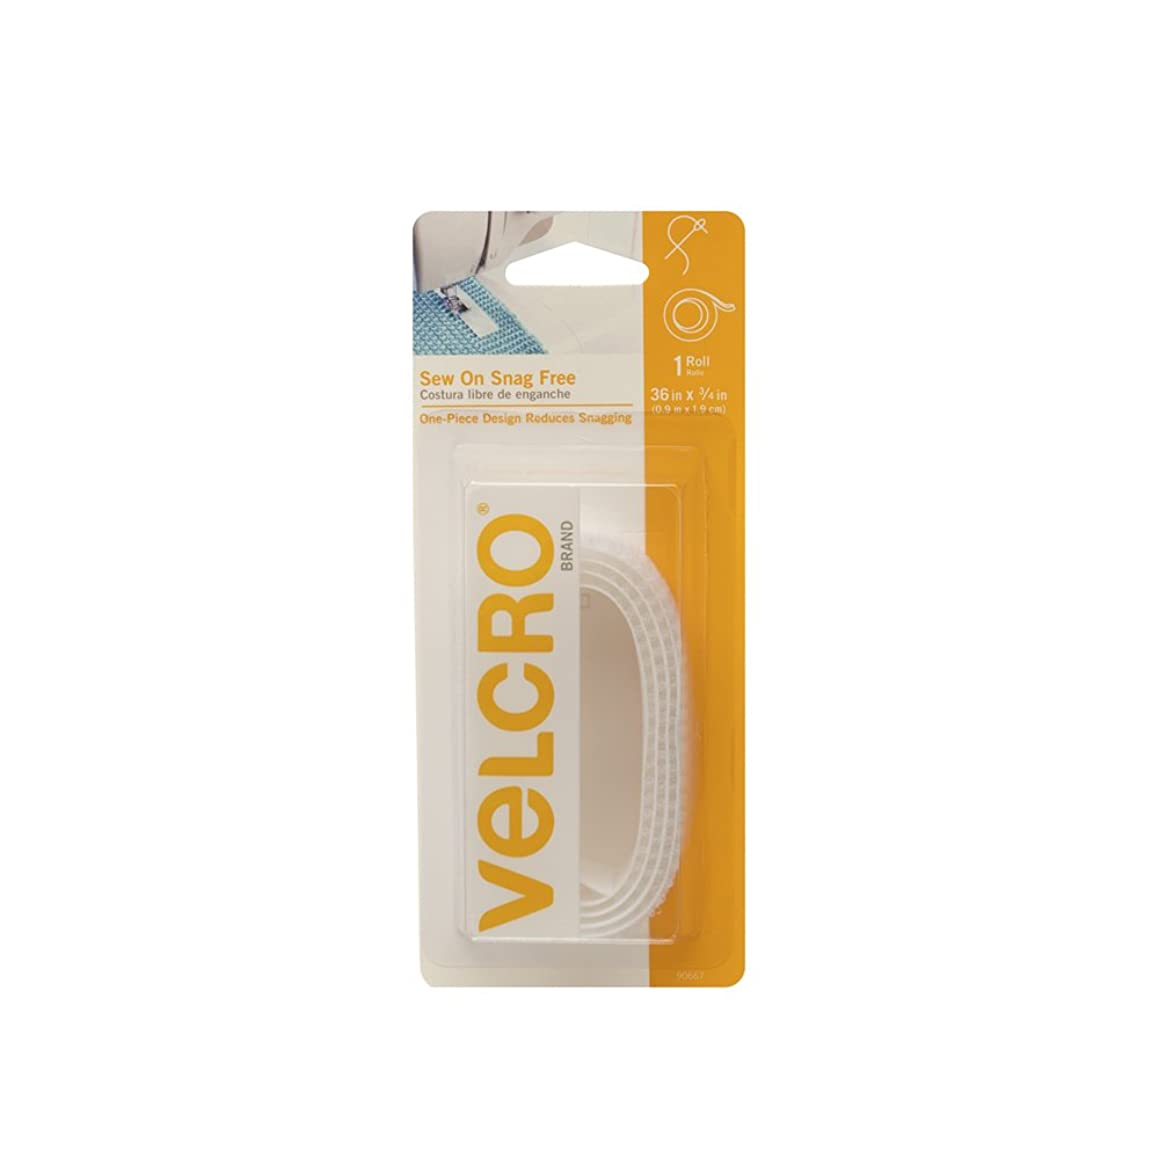 VELCRO Brand Sew On Snag-Free Tape for Alterations and Hemming   No No Ironing or Gluing Light Duty One-Piece Fabric Fastener   Cut-to-Length Roll, 36 x 3/4 inch, White